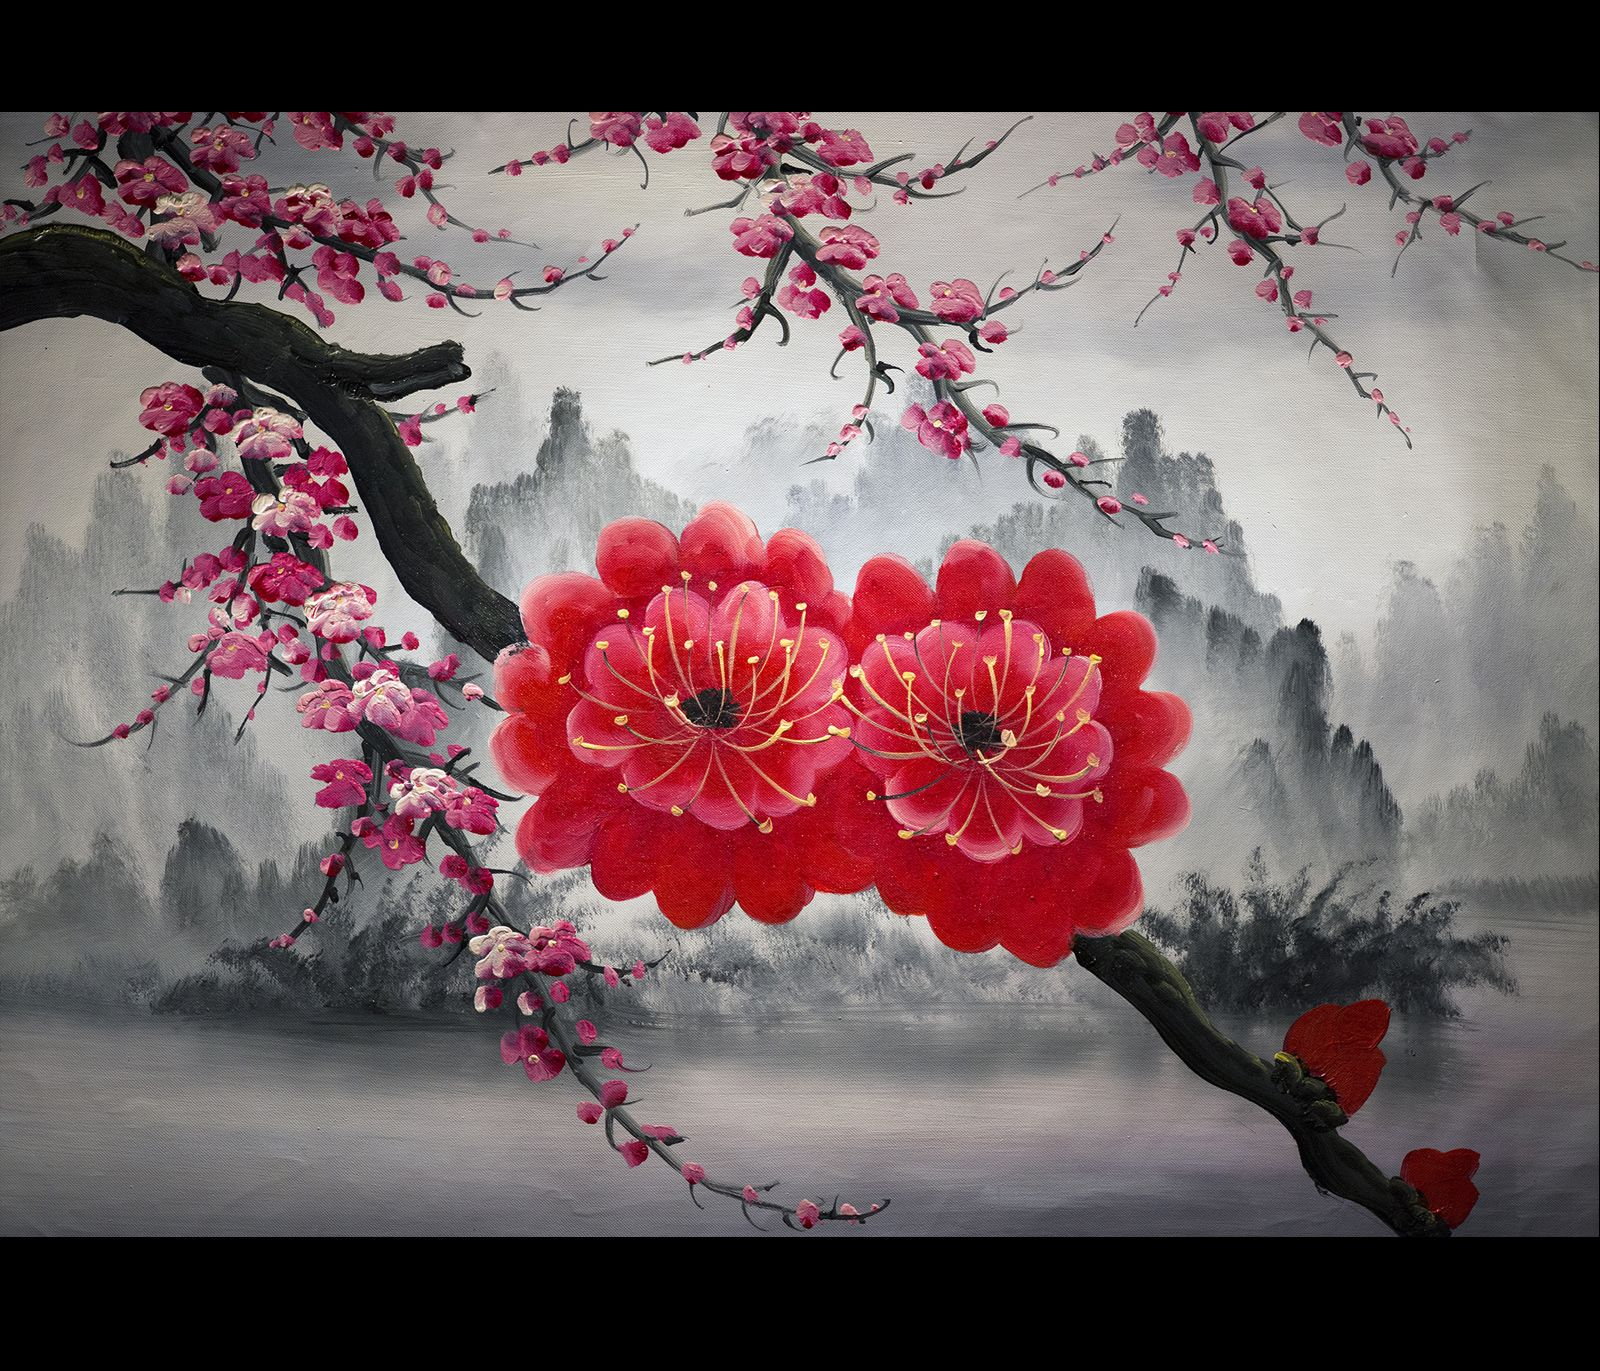 While Checking Out Sakura Inks I Found The Sakura Flower Site Some Lovely Images There Sakura Cherry Blossom Wallpaper Cross Paintings Butterfly Wallpaper